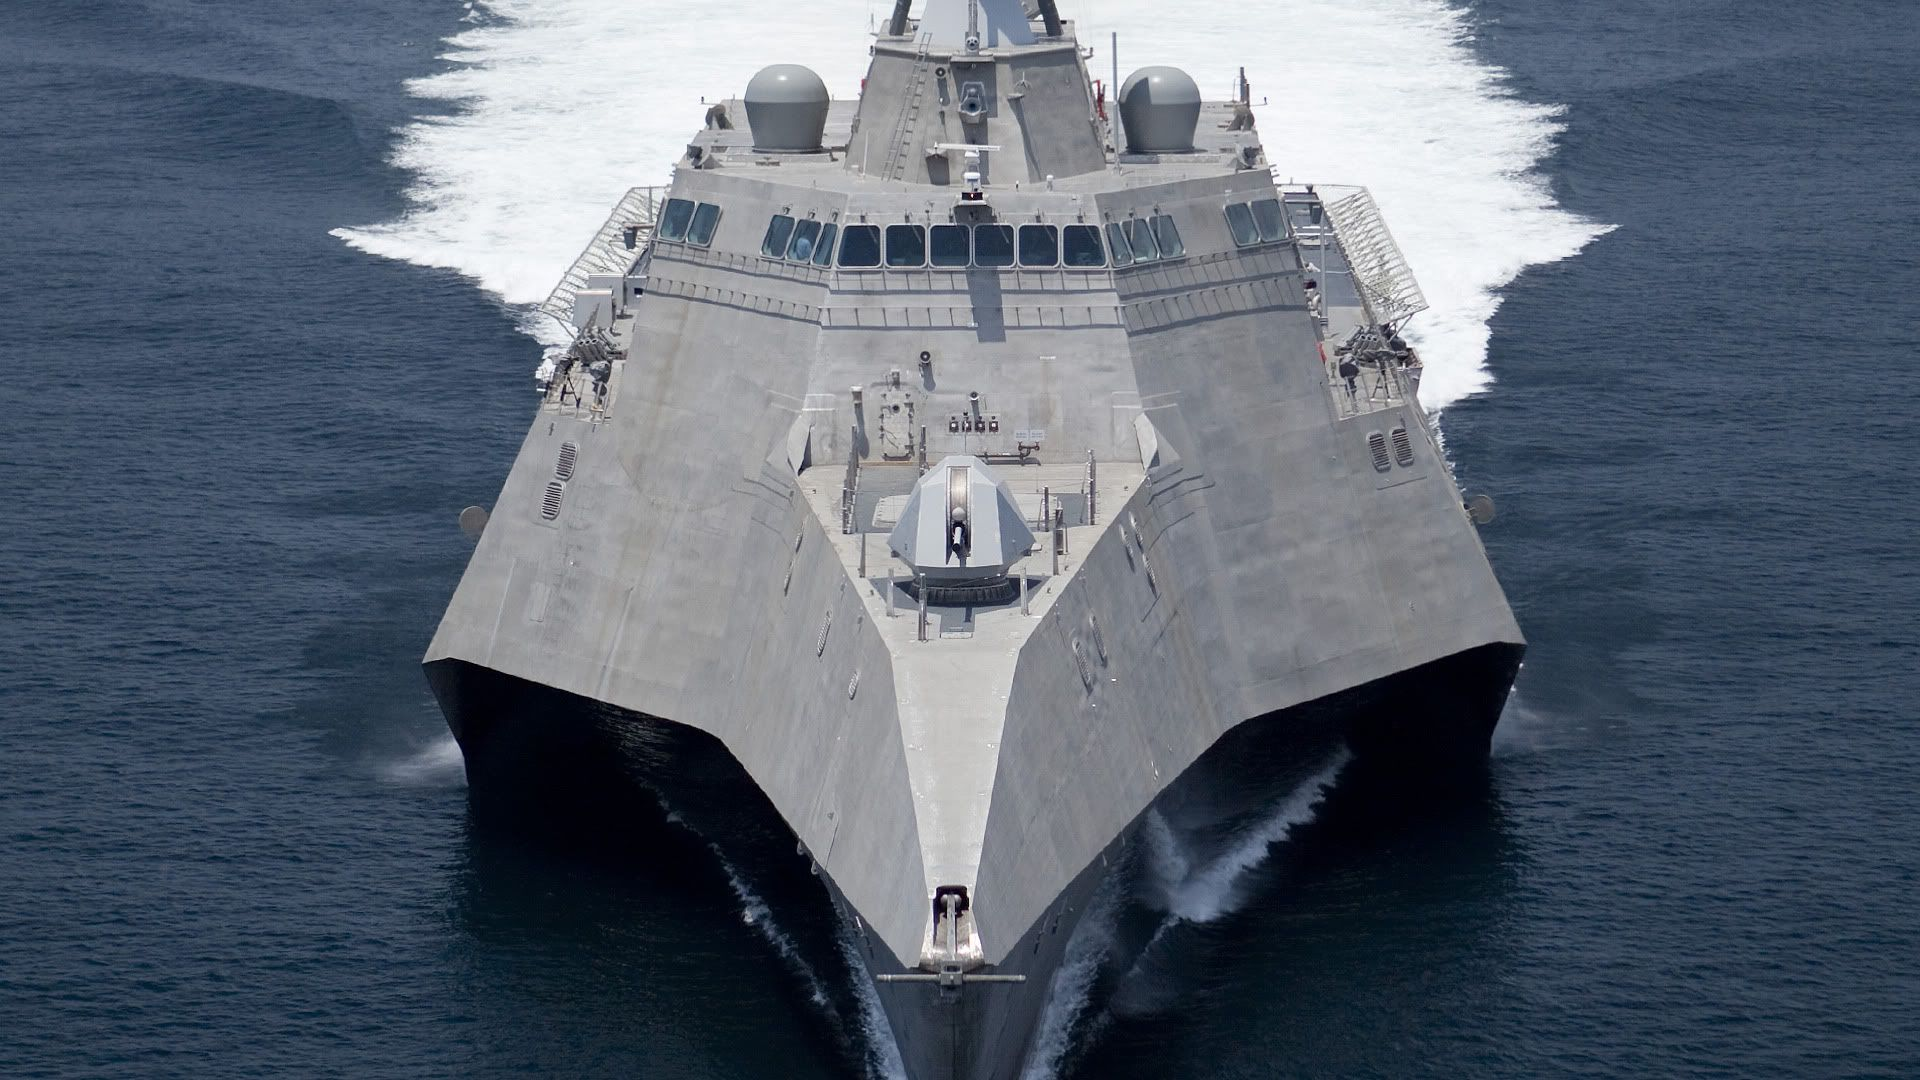 navy THE U.S. NAVY'S LITTORAL COMBAT SHIP (LCS) HIGH